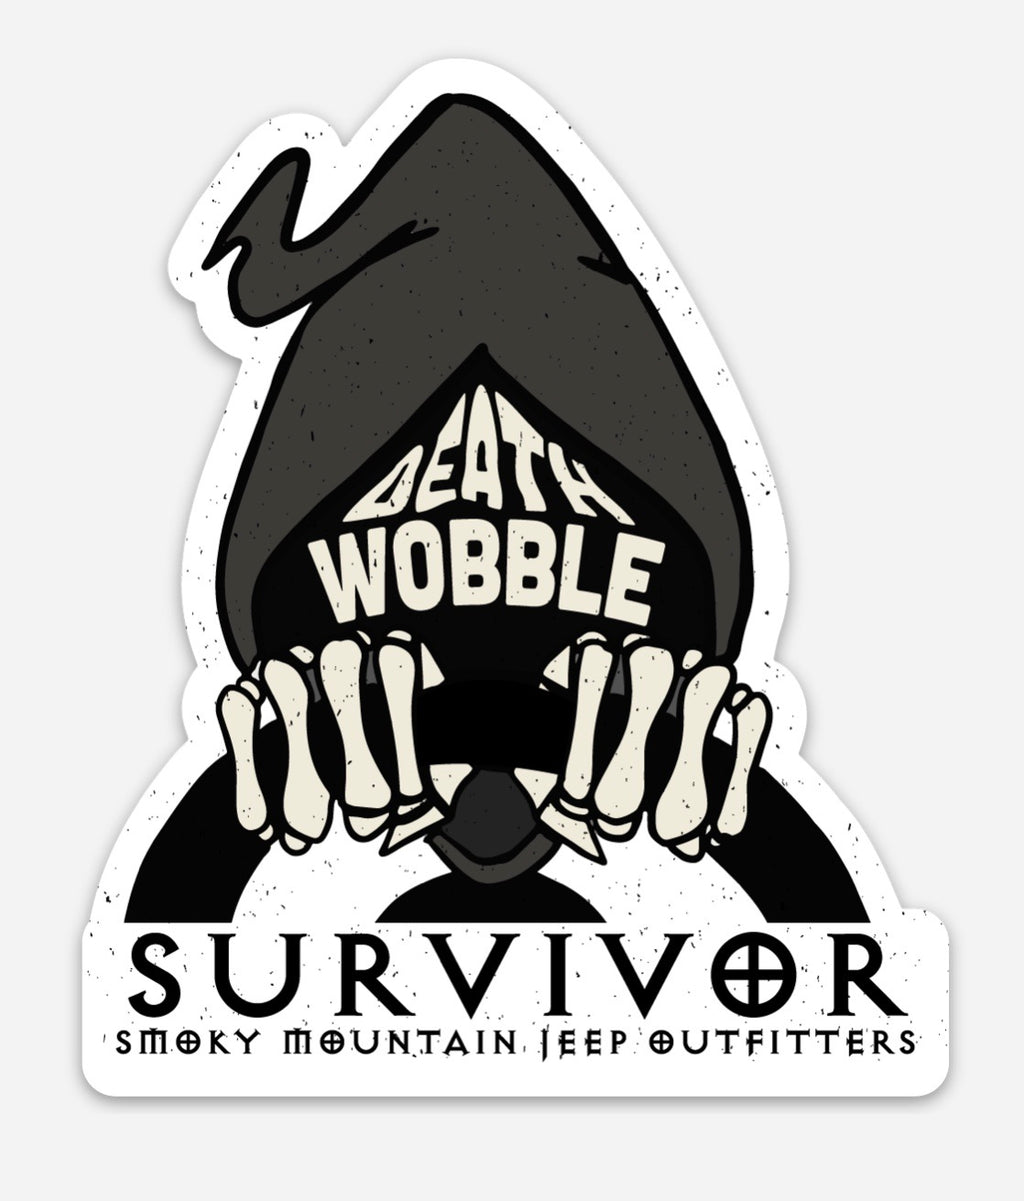 DEATH WOBBLE SURVIVOR DECAL